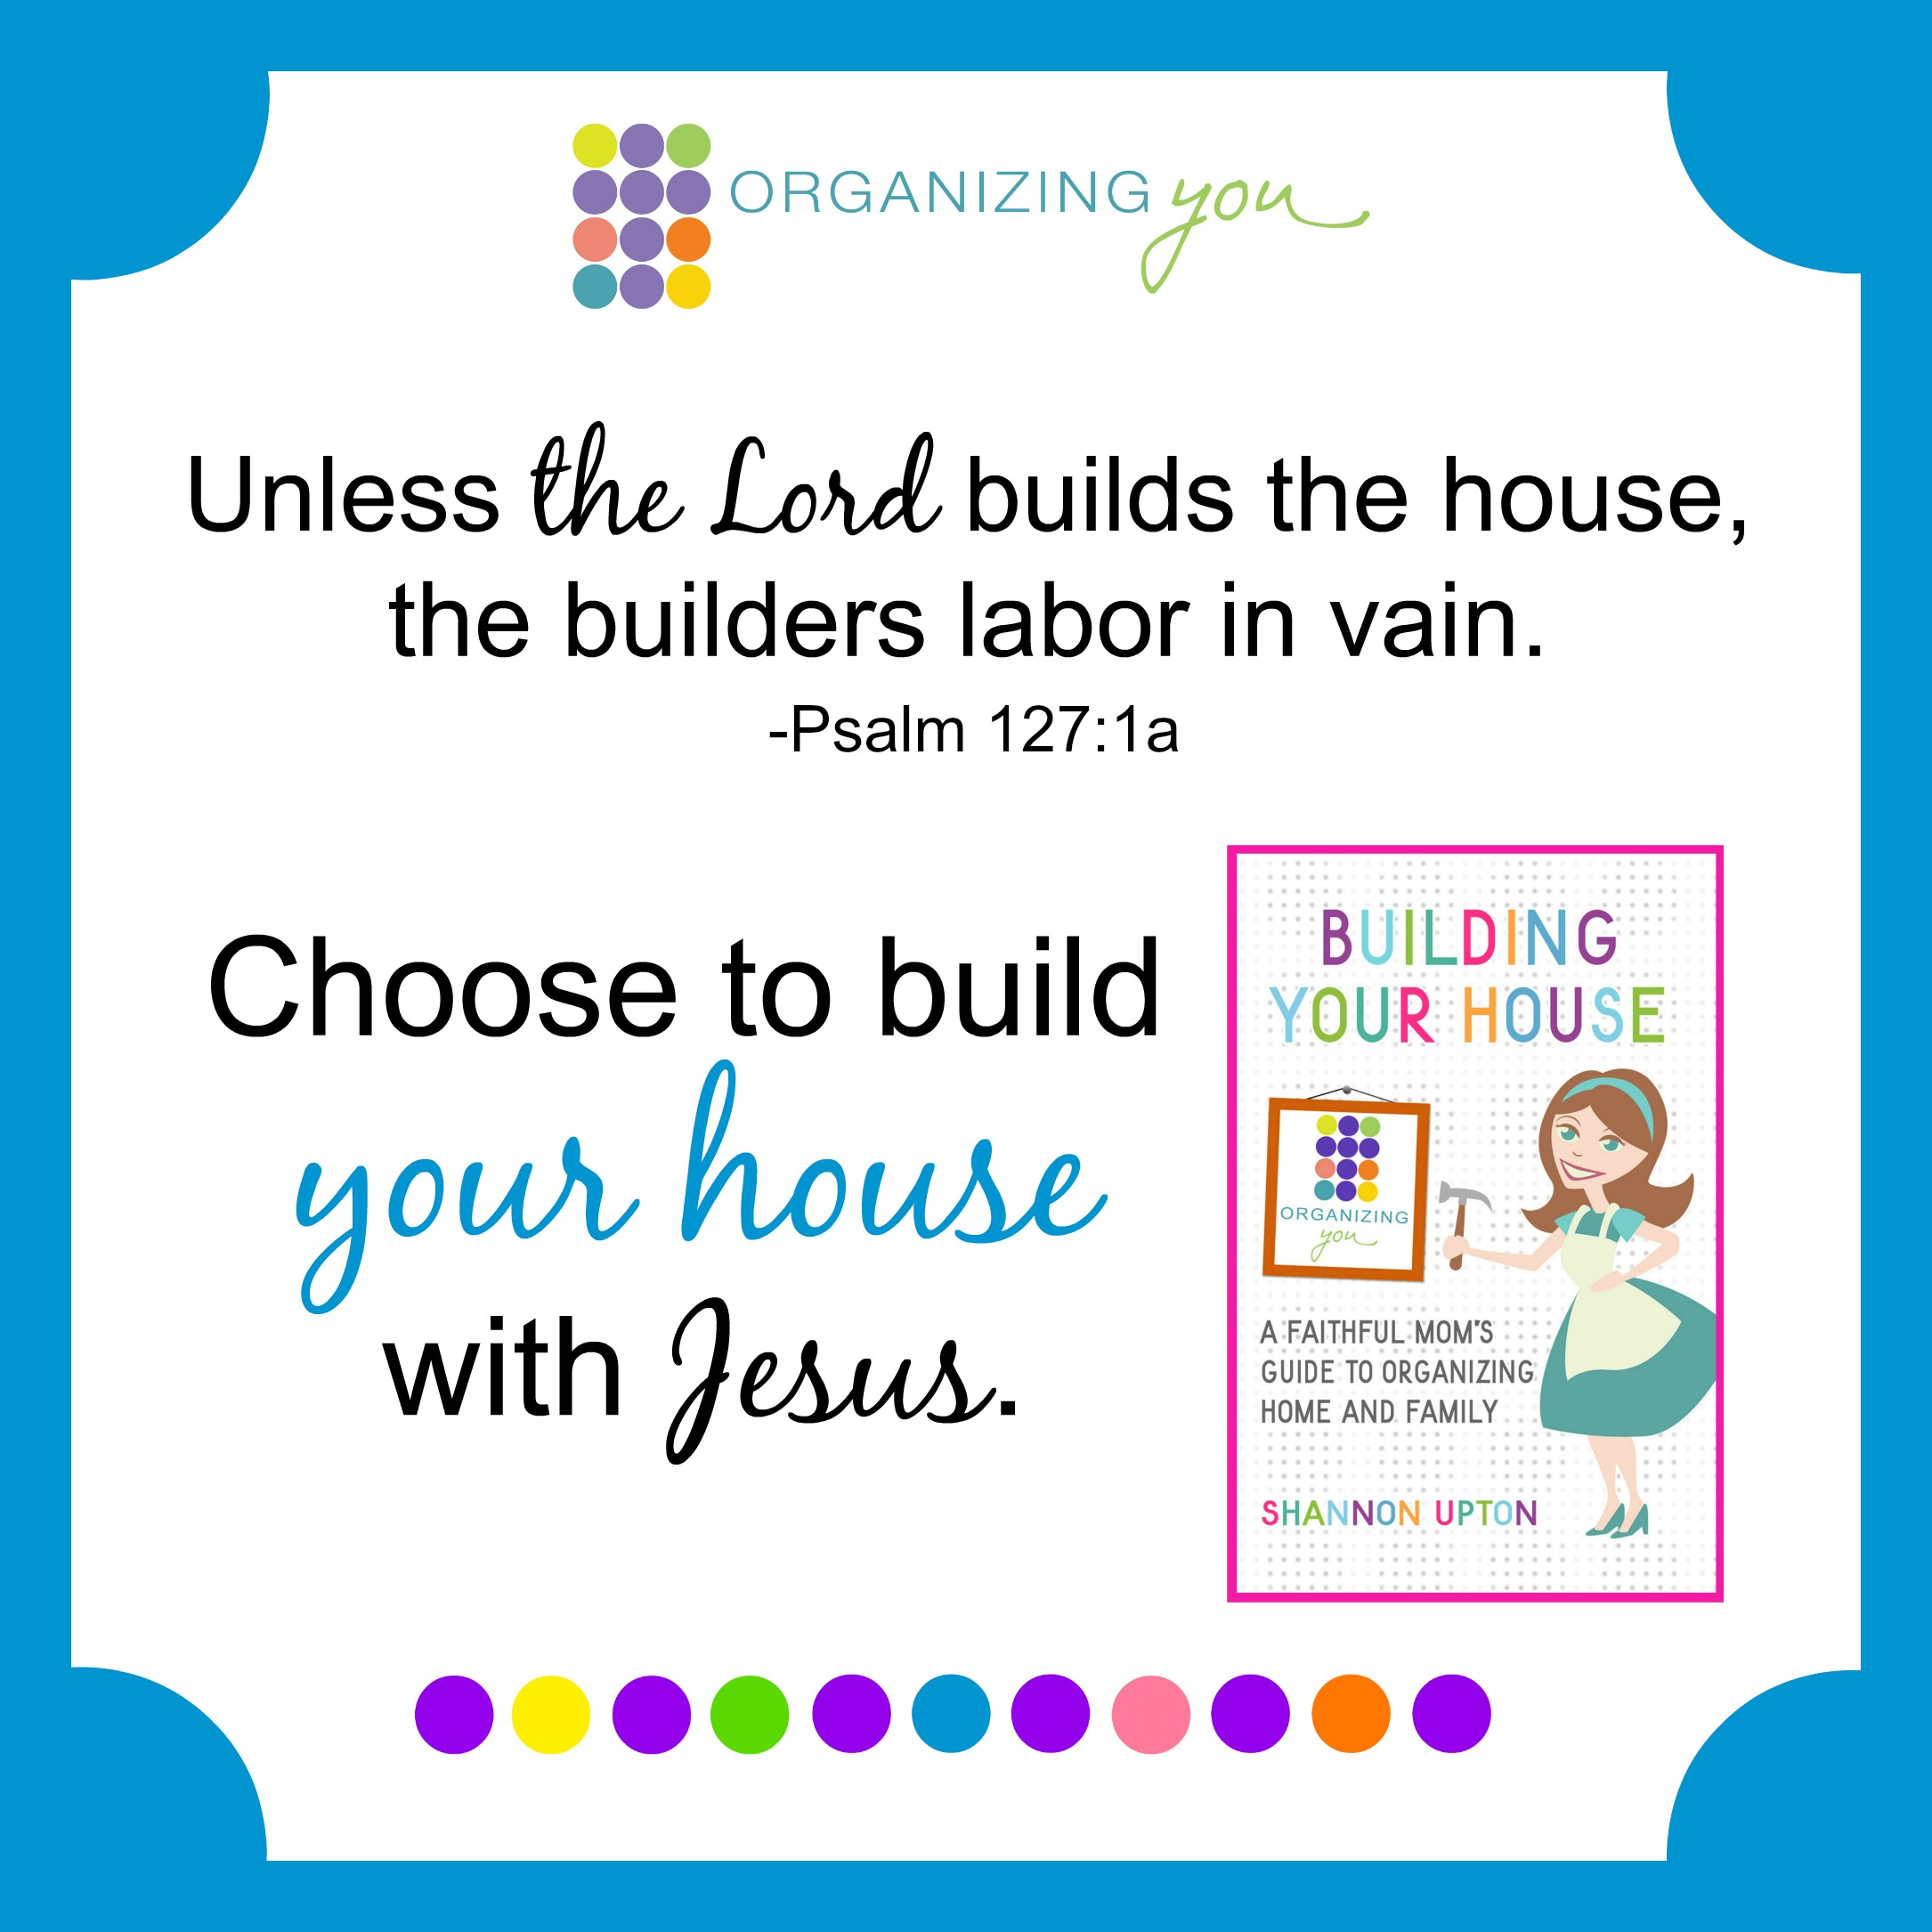 Building-Your-House-ad-3